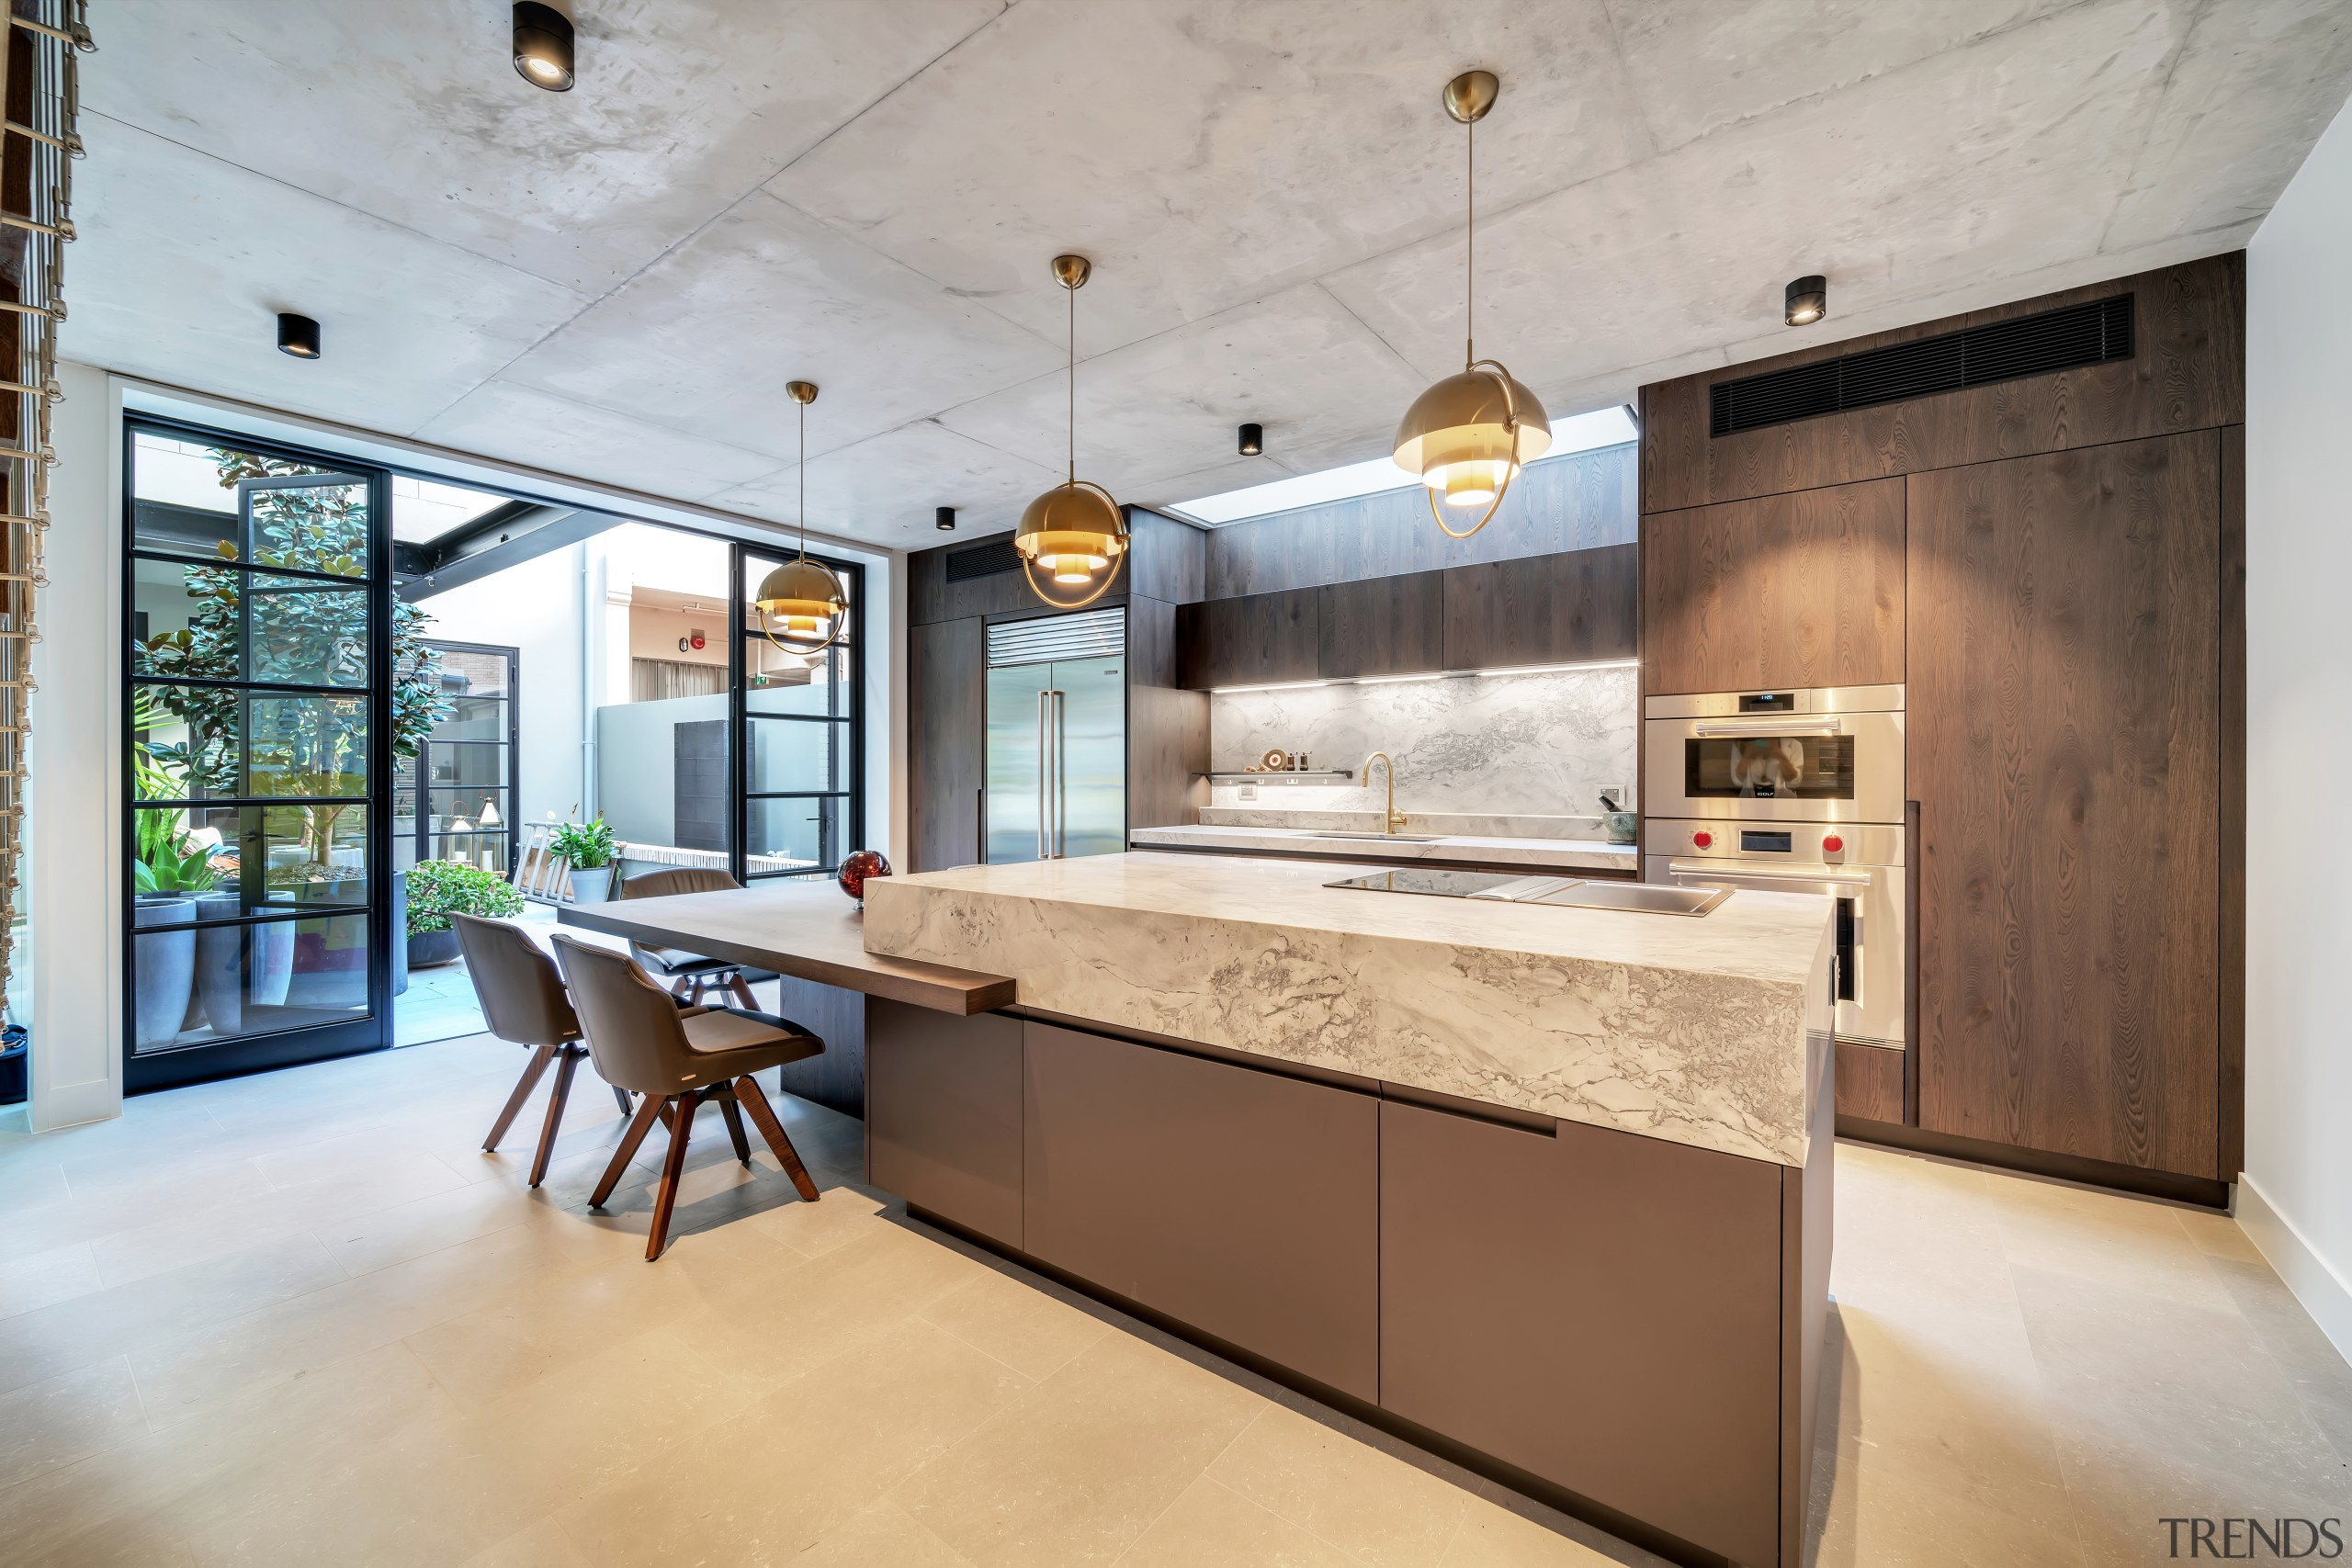 One island – two personalities. For this kitchen,